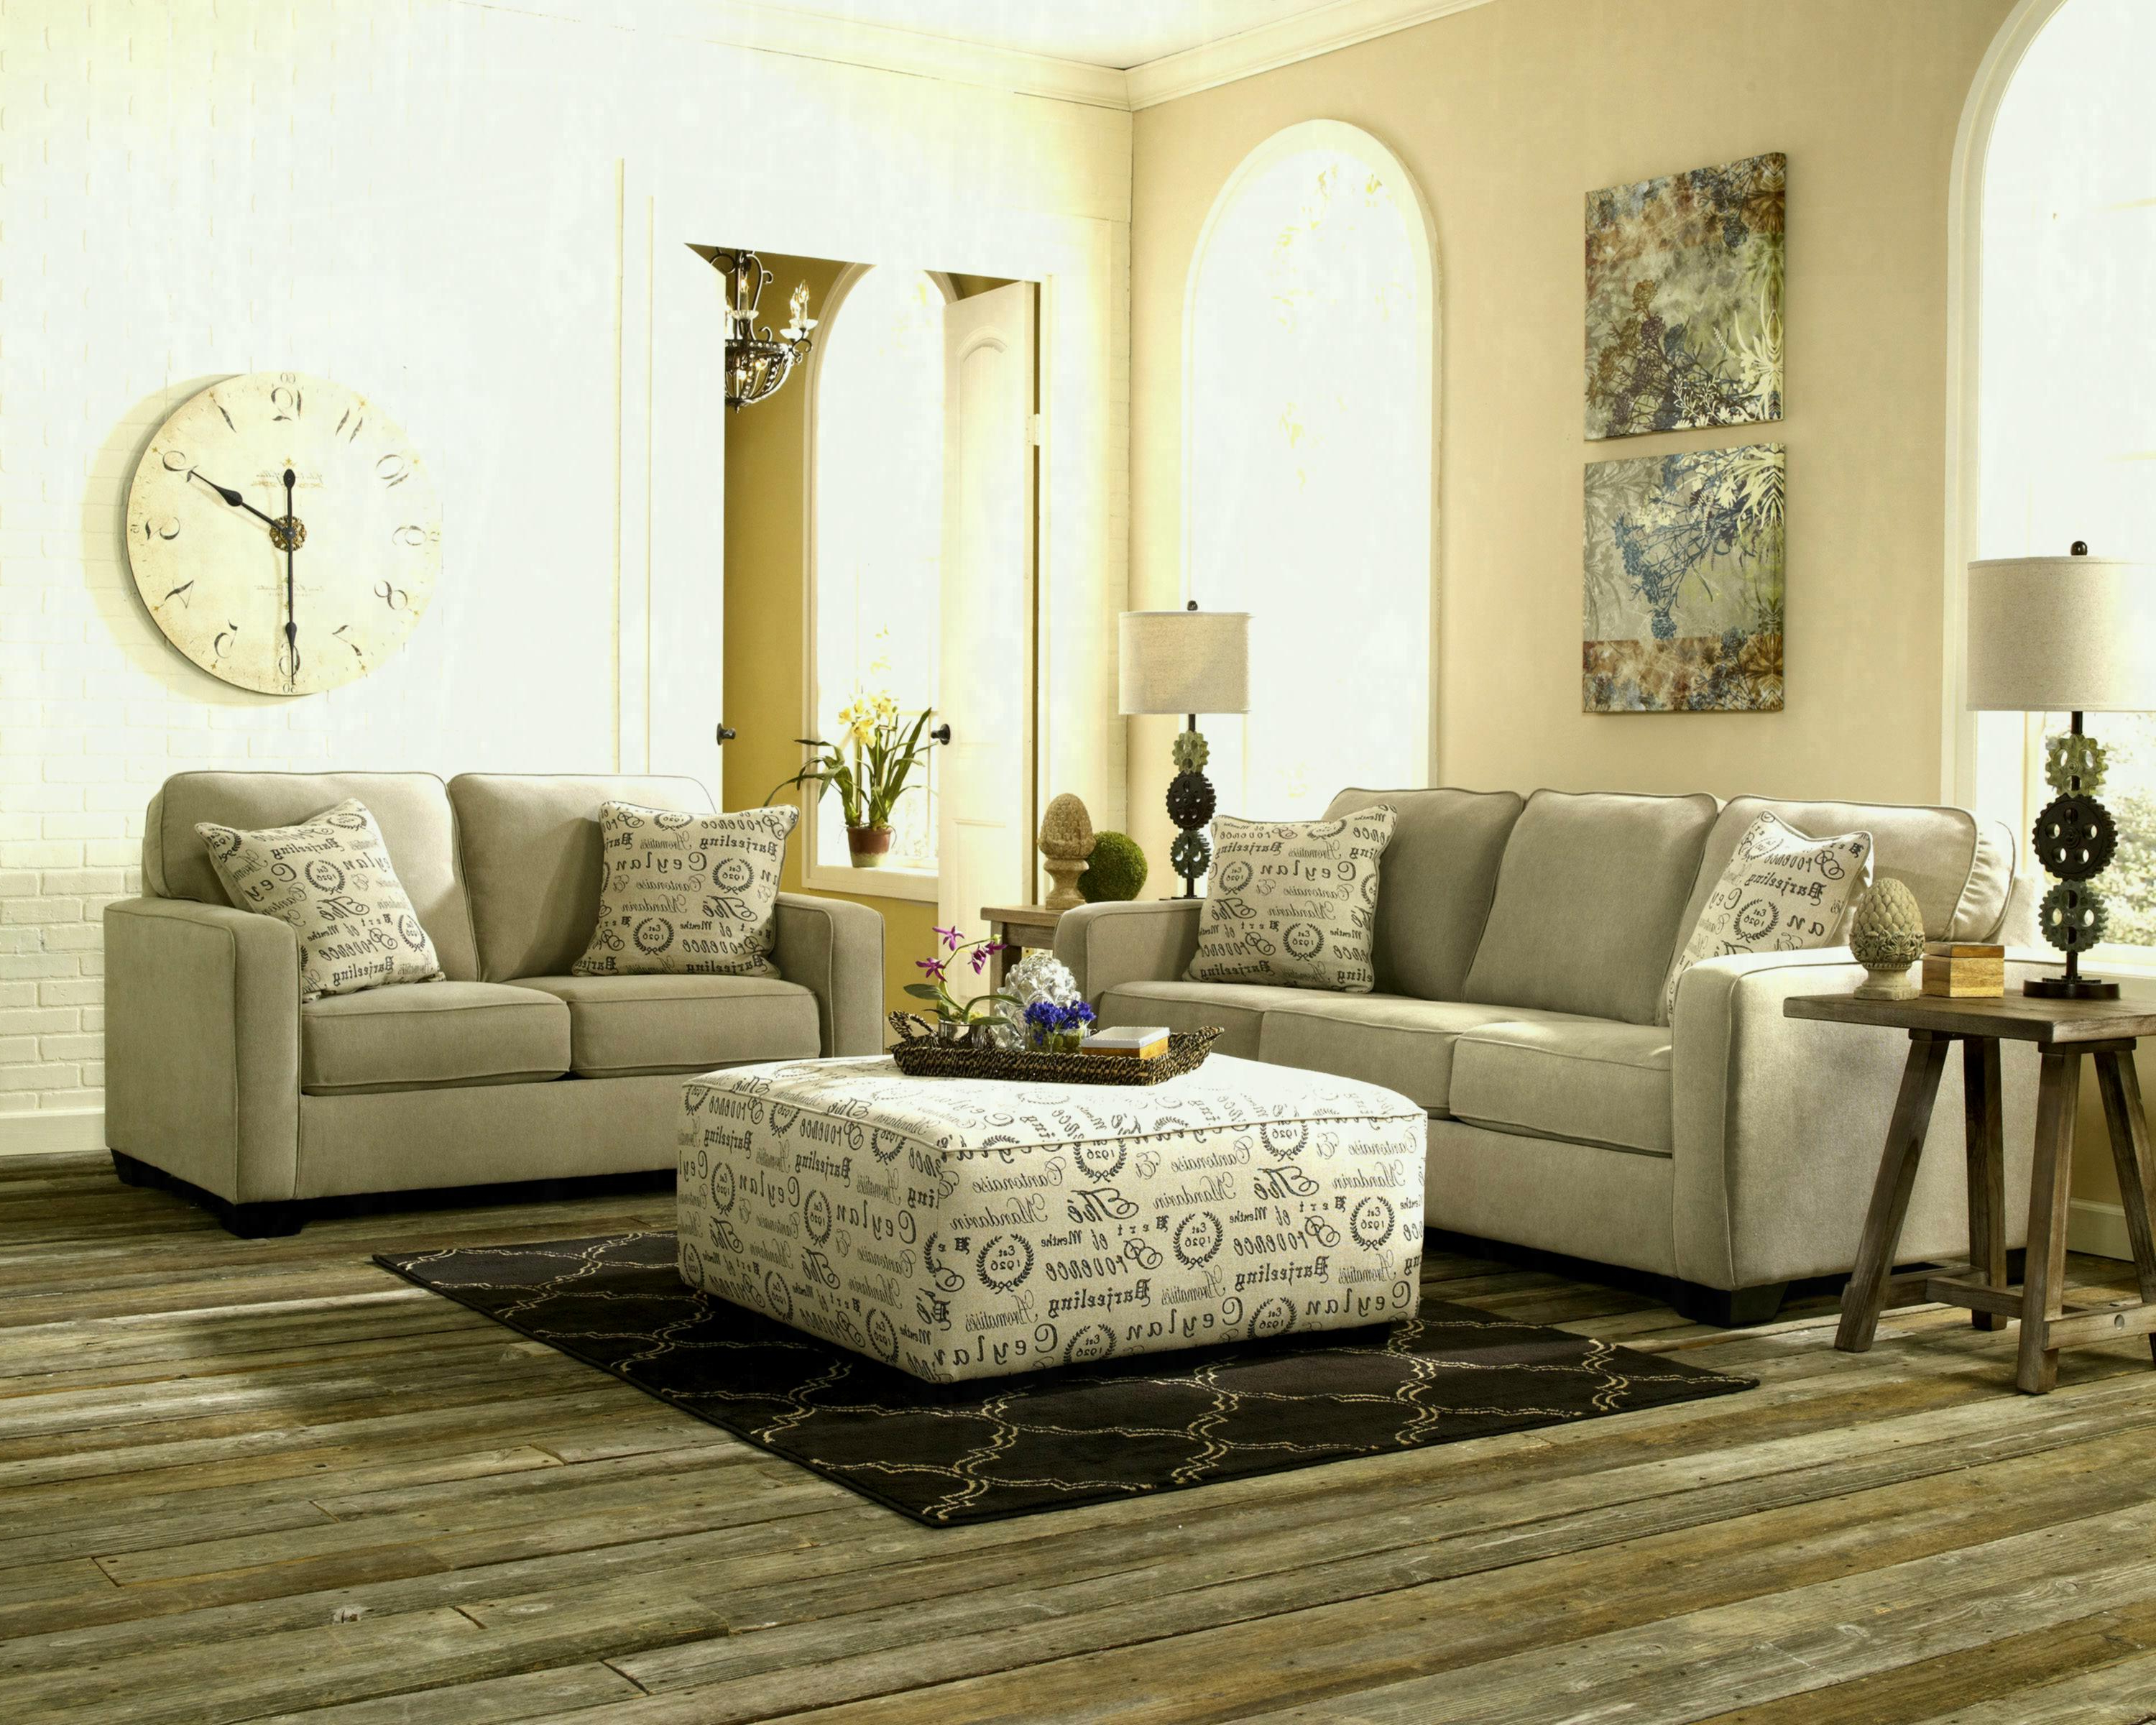 Well Known Added To Cart Aquarius Light Grey Piece Sectional W Raf Chaise Intended For Aquarius Light Grey 2 Piece Sectionals With Laf Chaise (Gallery 8 of 20)